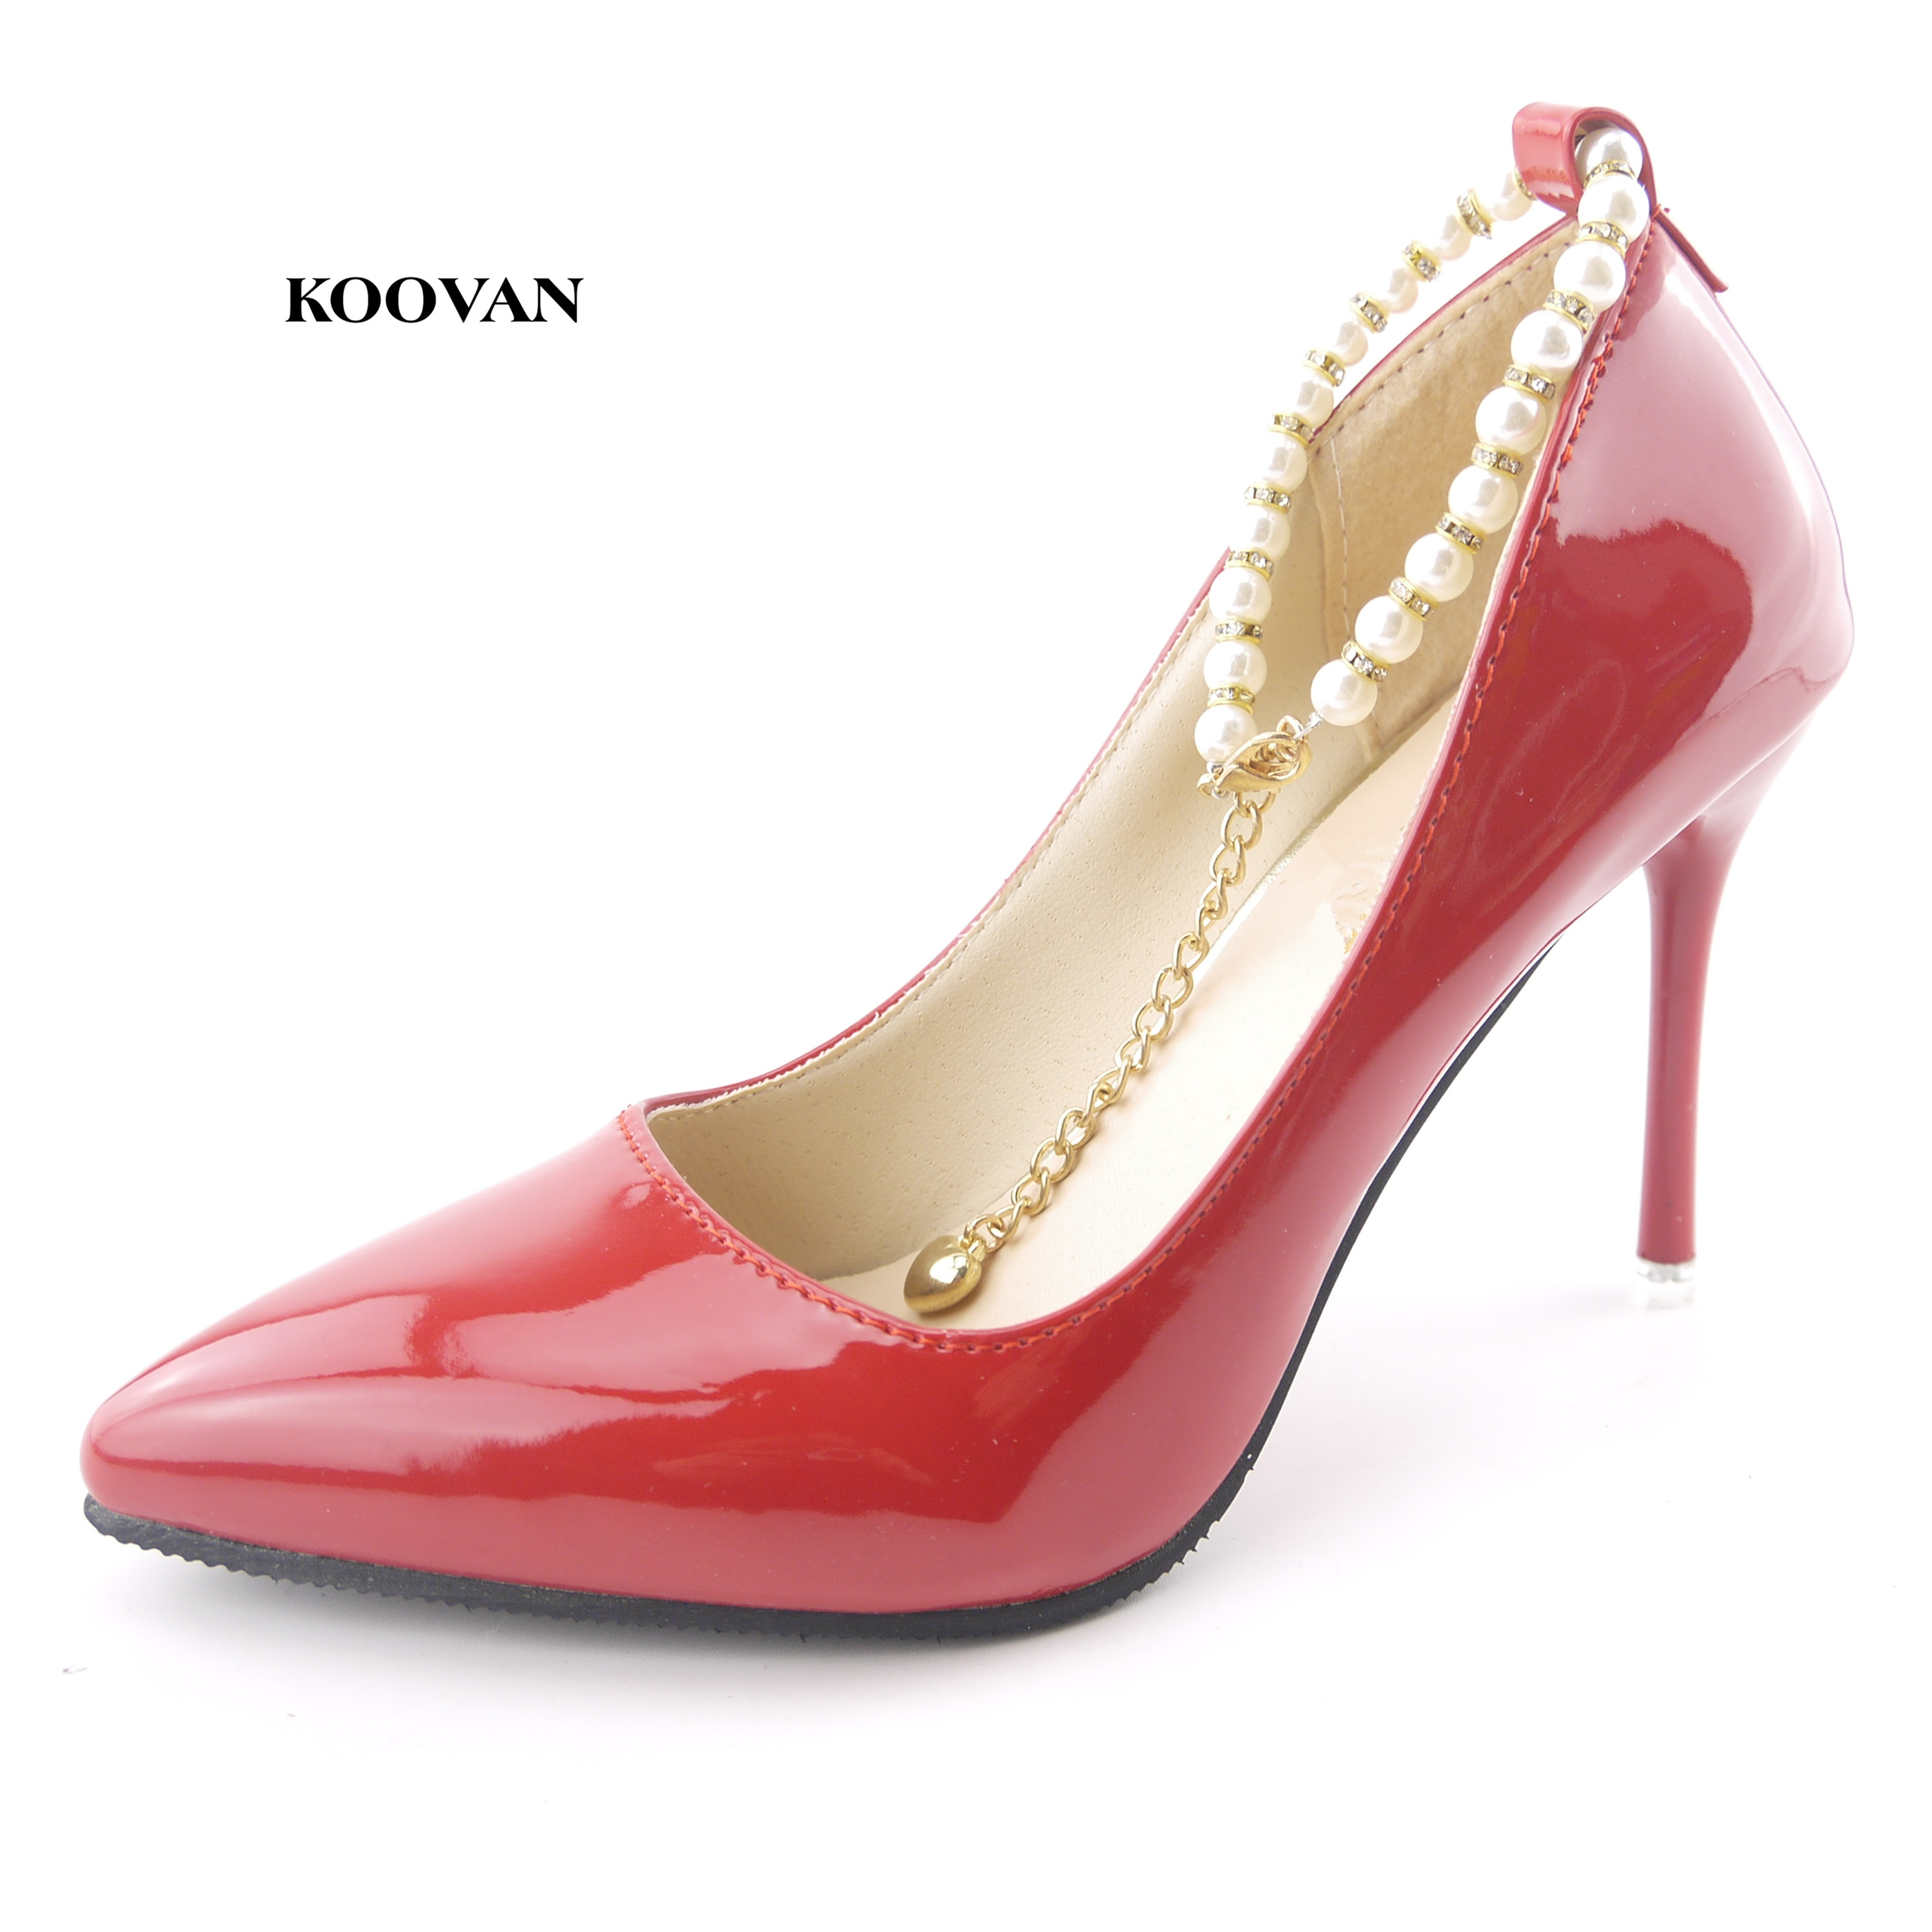 Koovan Women Pumps 2017 Spring New Fashion Women Shoes Pointed High Heels Shoes Fashion Thin Heels Pearl Wedding Shoes Red Pink 2016 spring and summer free shipping red new fashion design shoes african women print rt 3